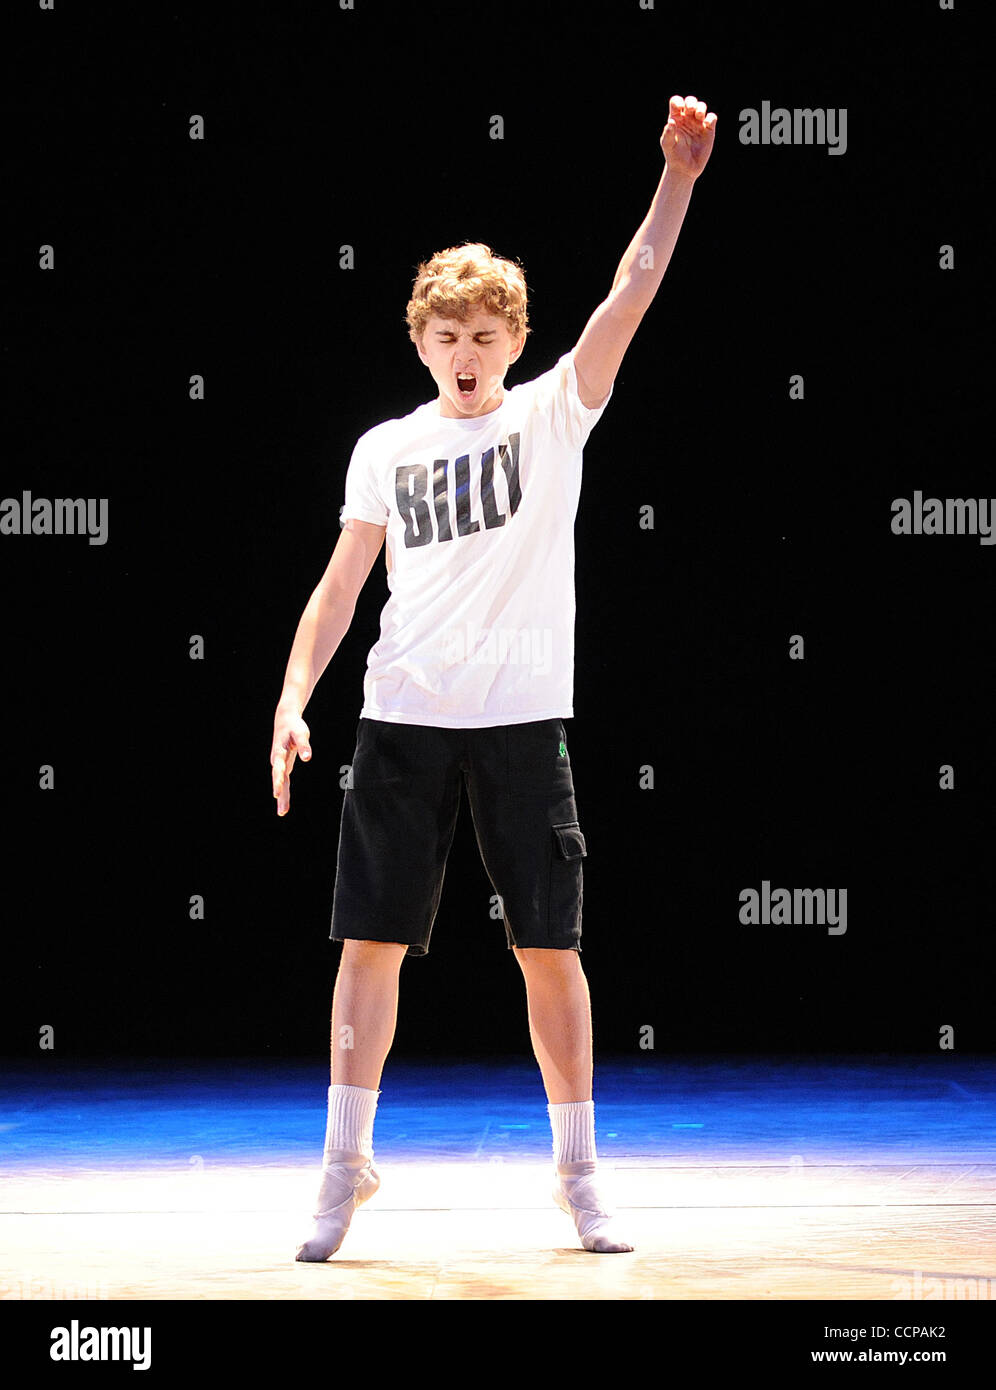 Oct 14, 2010 - Durham, North Carolina; USA -  Actor MICHAEL DAMESKI who is starring as Billy Elliot in the Broadway - Stock Image